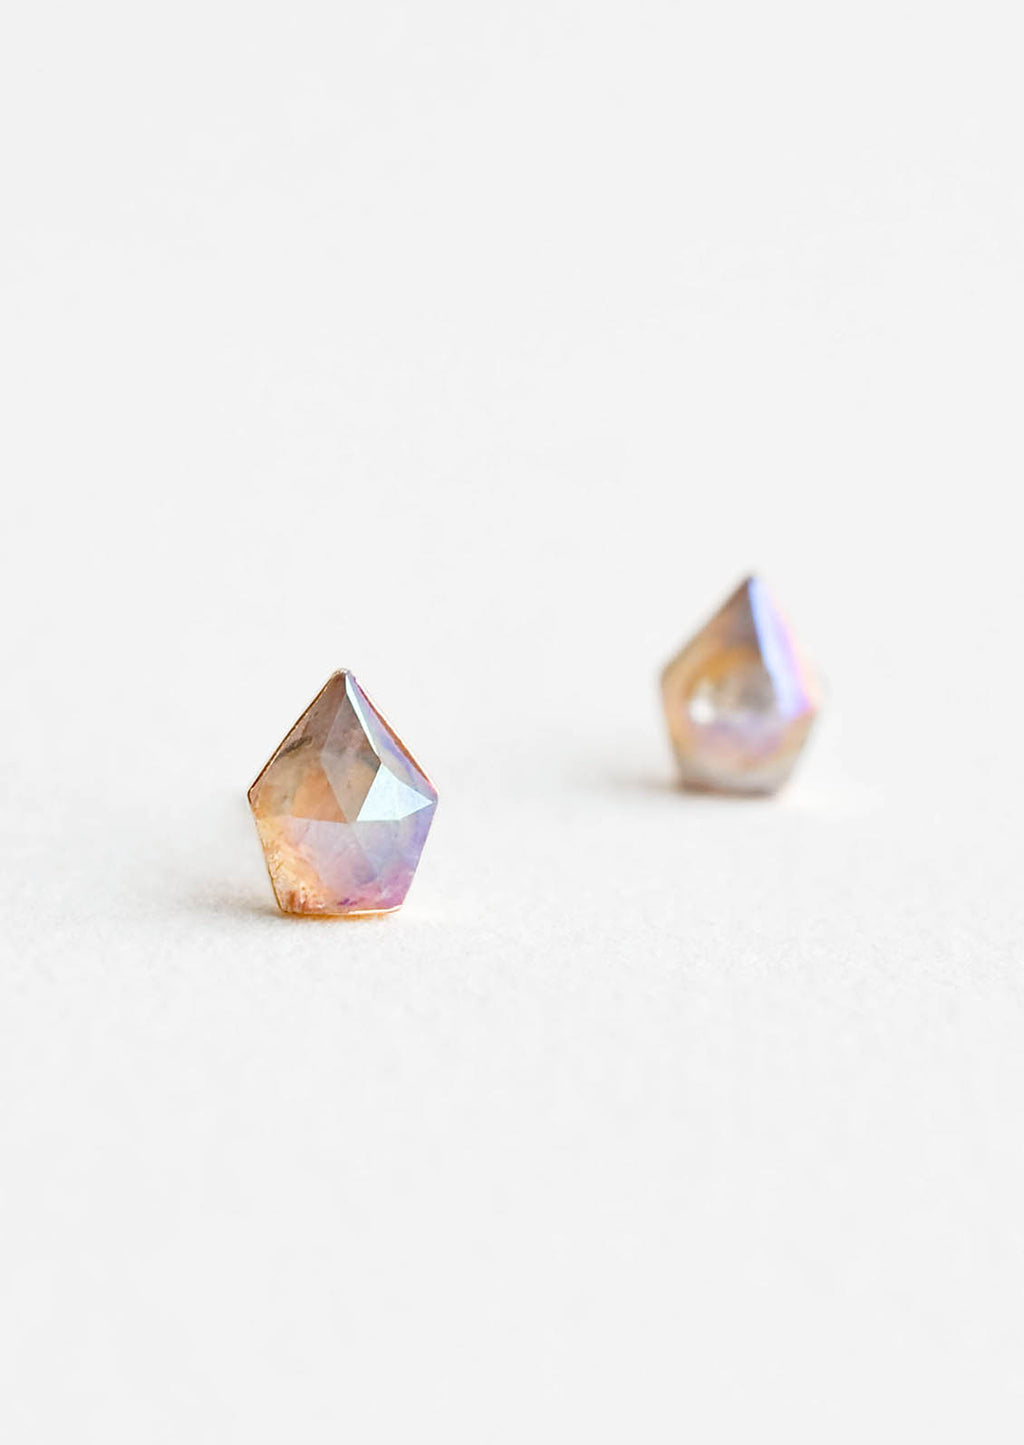 1: Faceted, gemstone shaped earrings with rainbow-like iridescent finish.